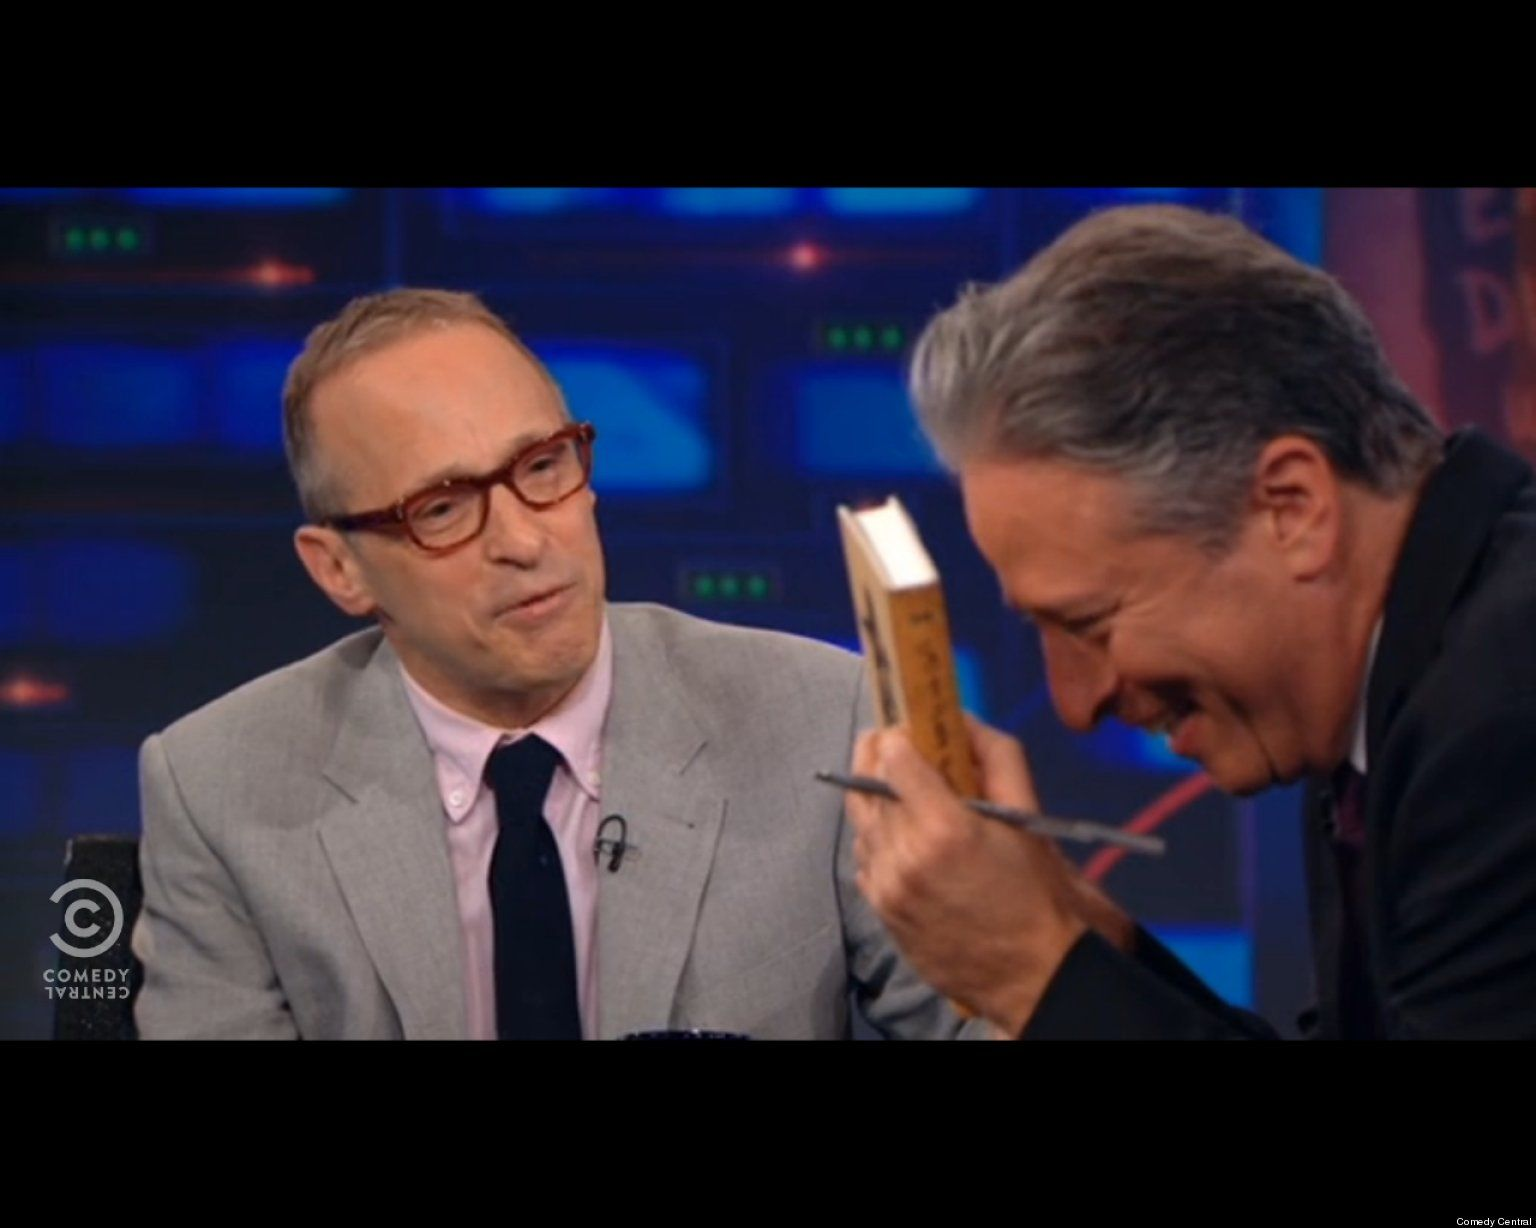 watch david sedaris makes jon stewart lose it very funny funny watch david sedaris makes jon stewart lose it